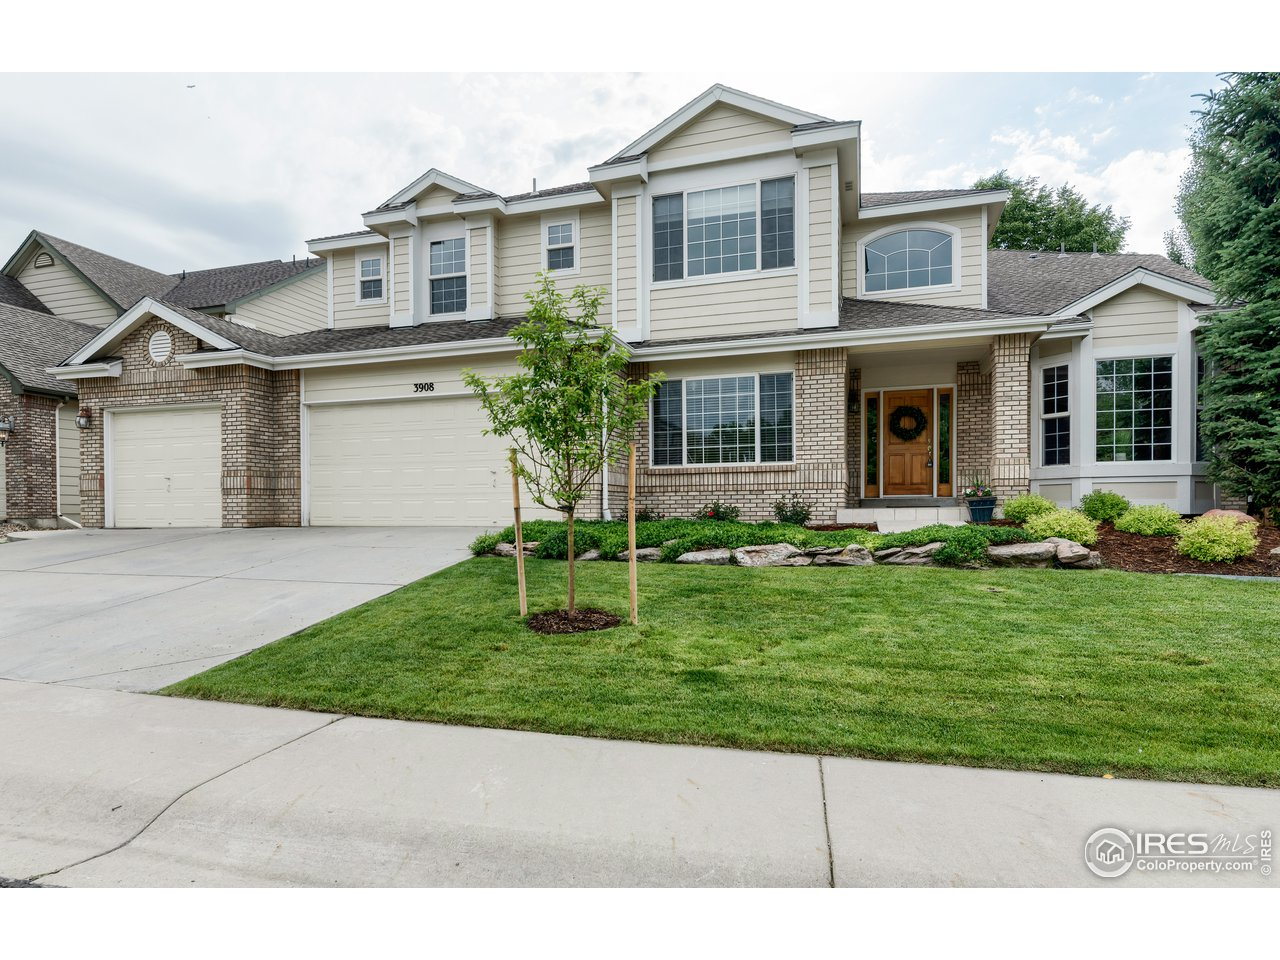 3908 Grand Canyon St, Fort Collins CO 80525